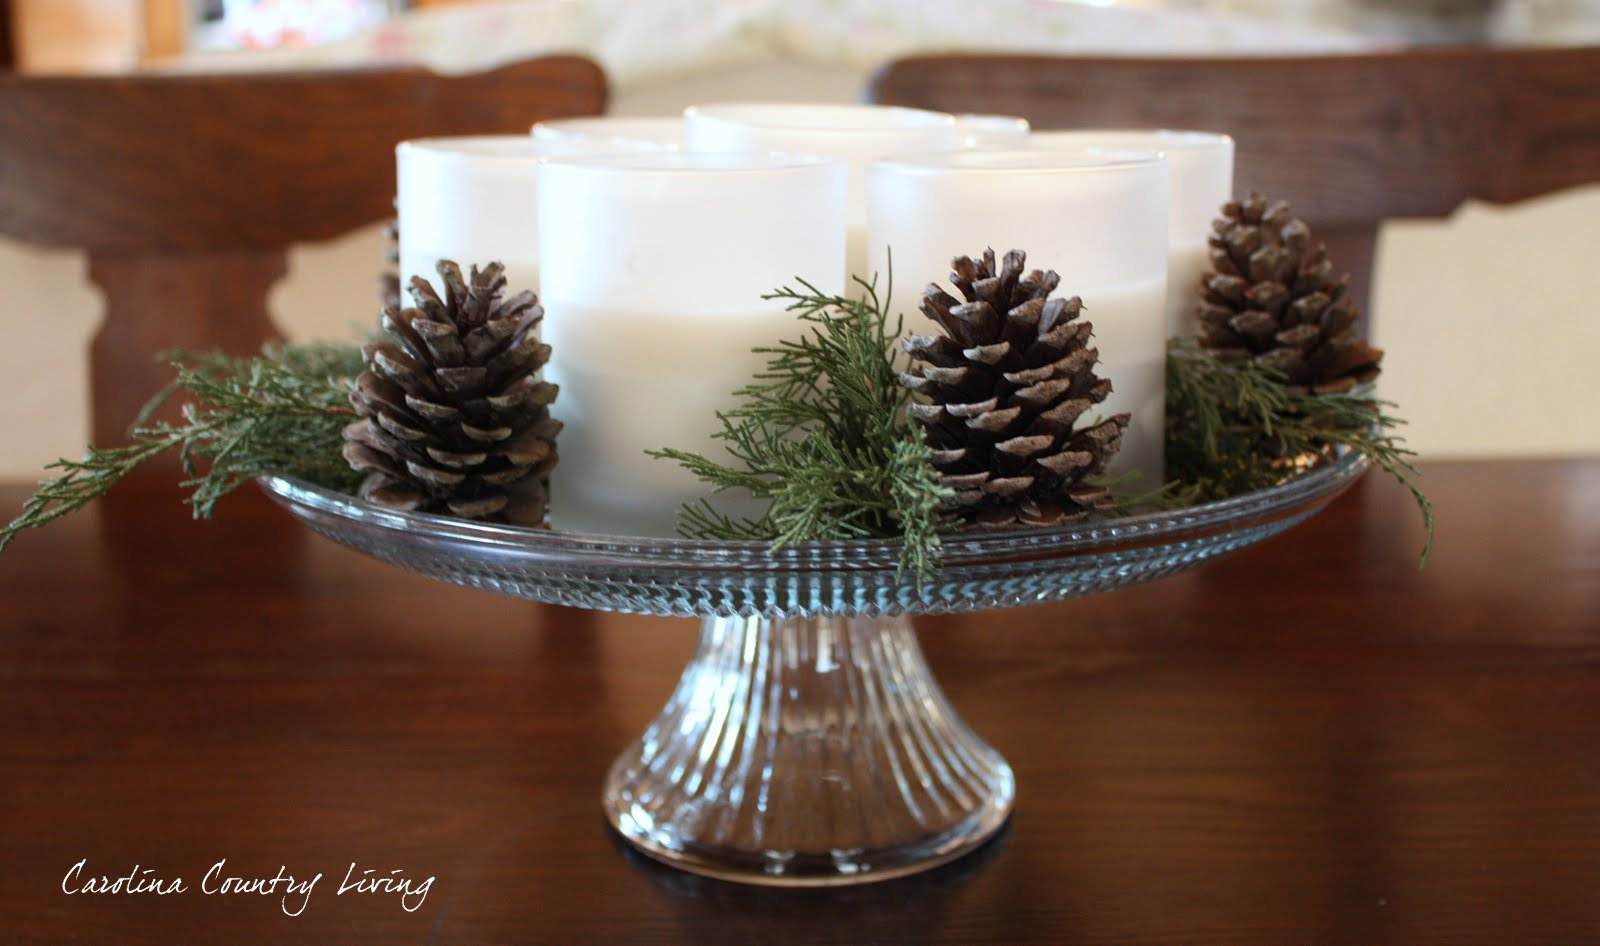 Carolina country living simple winter centerpiece